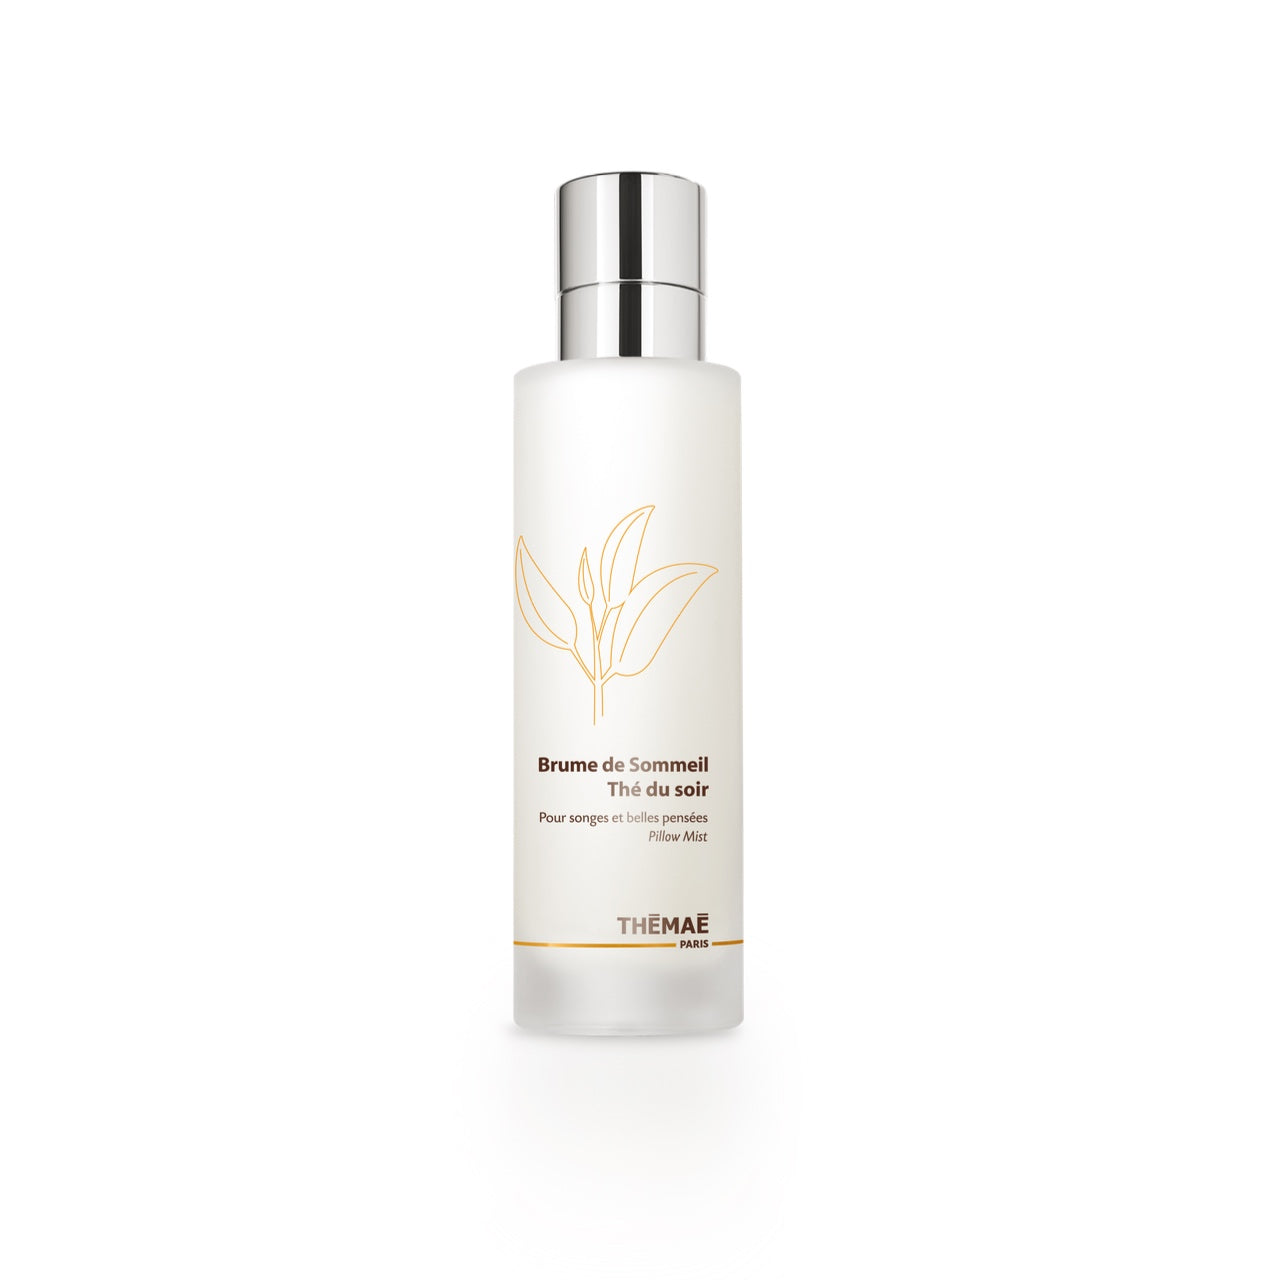 THEMAE Pillow Mist